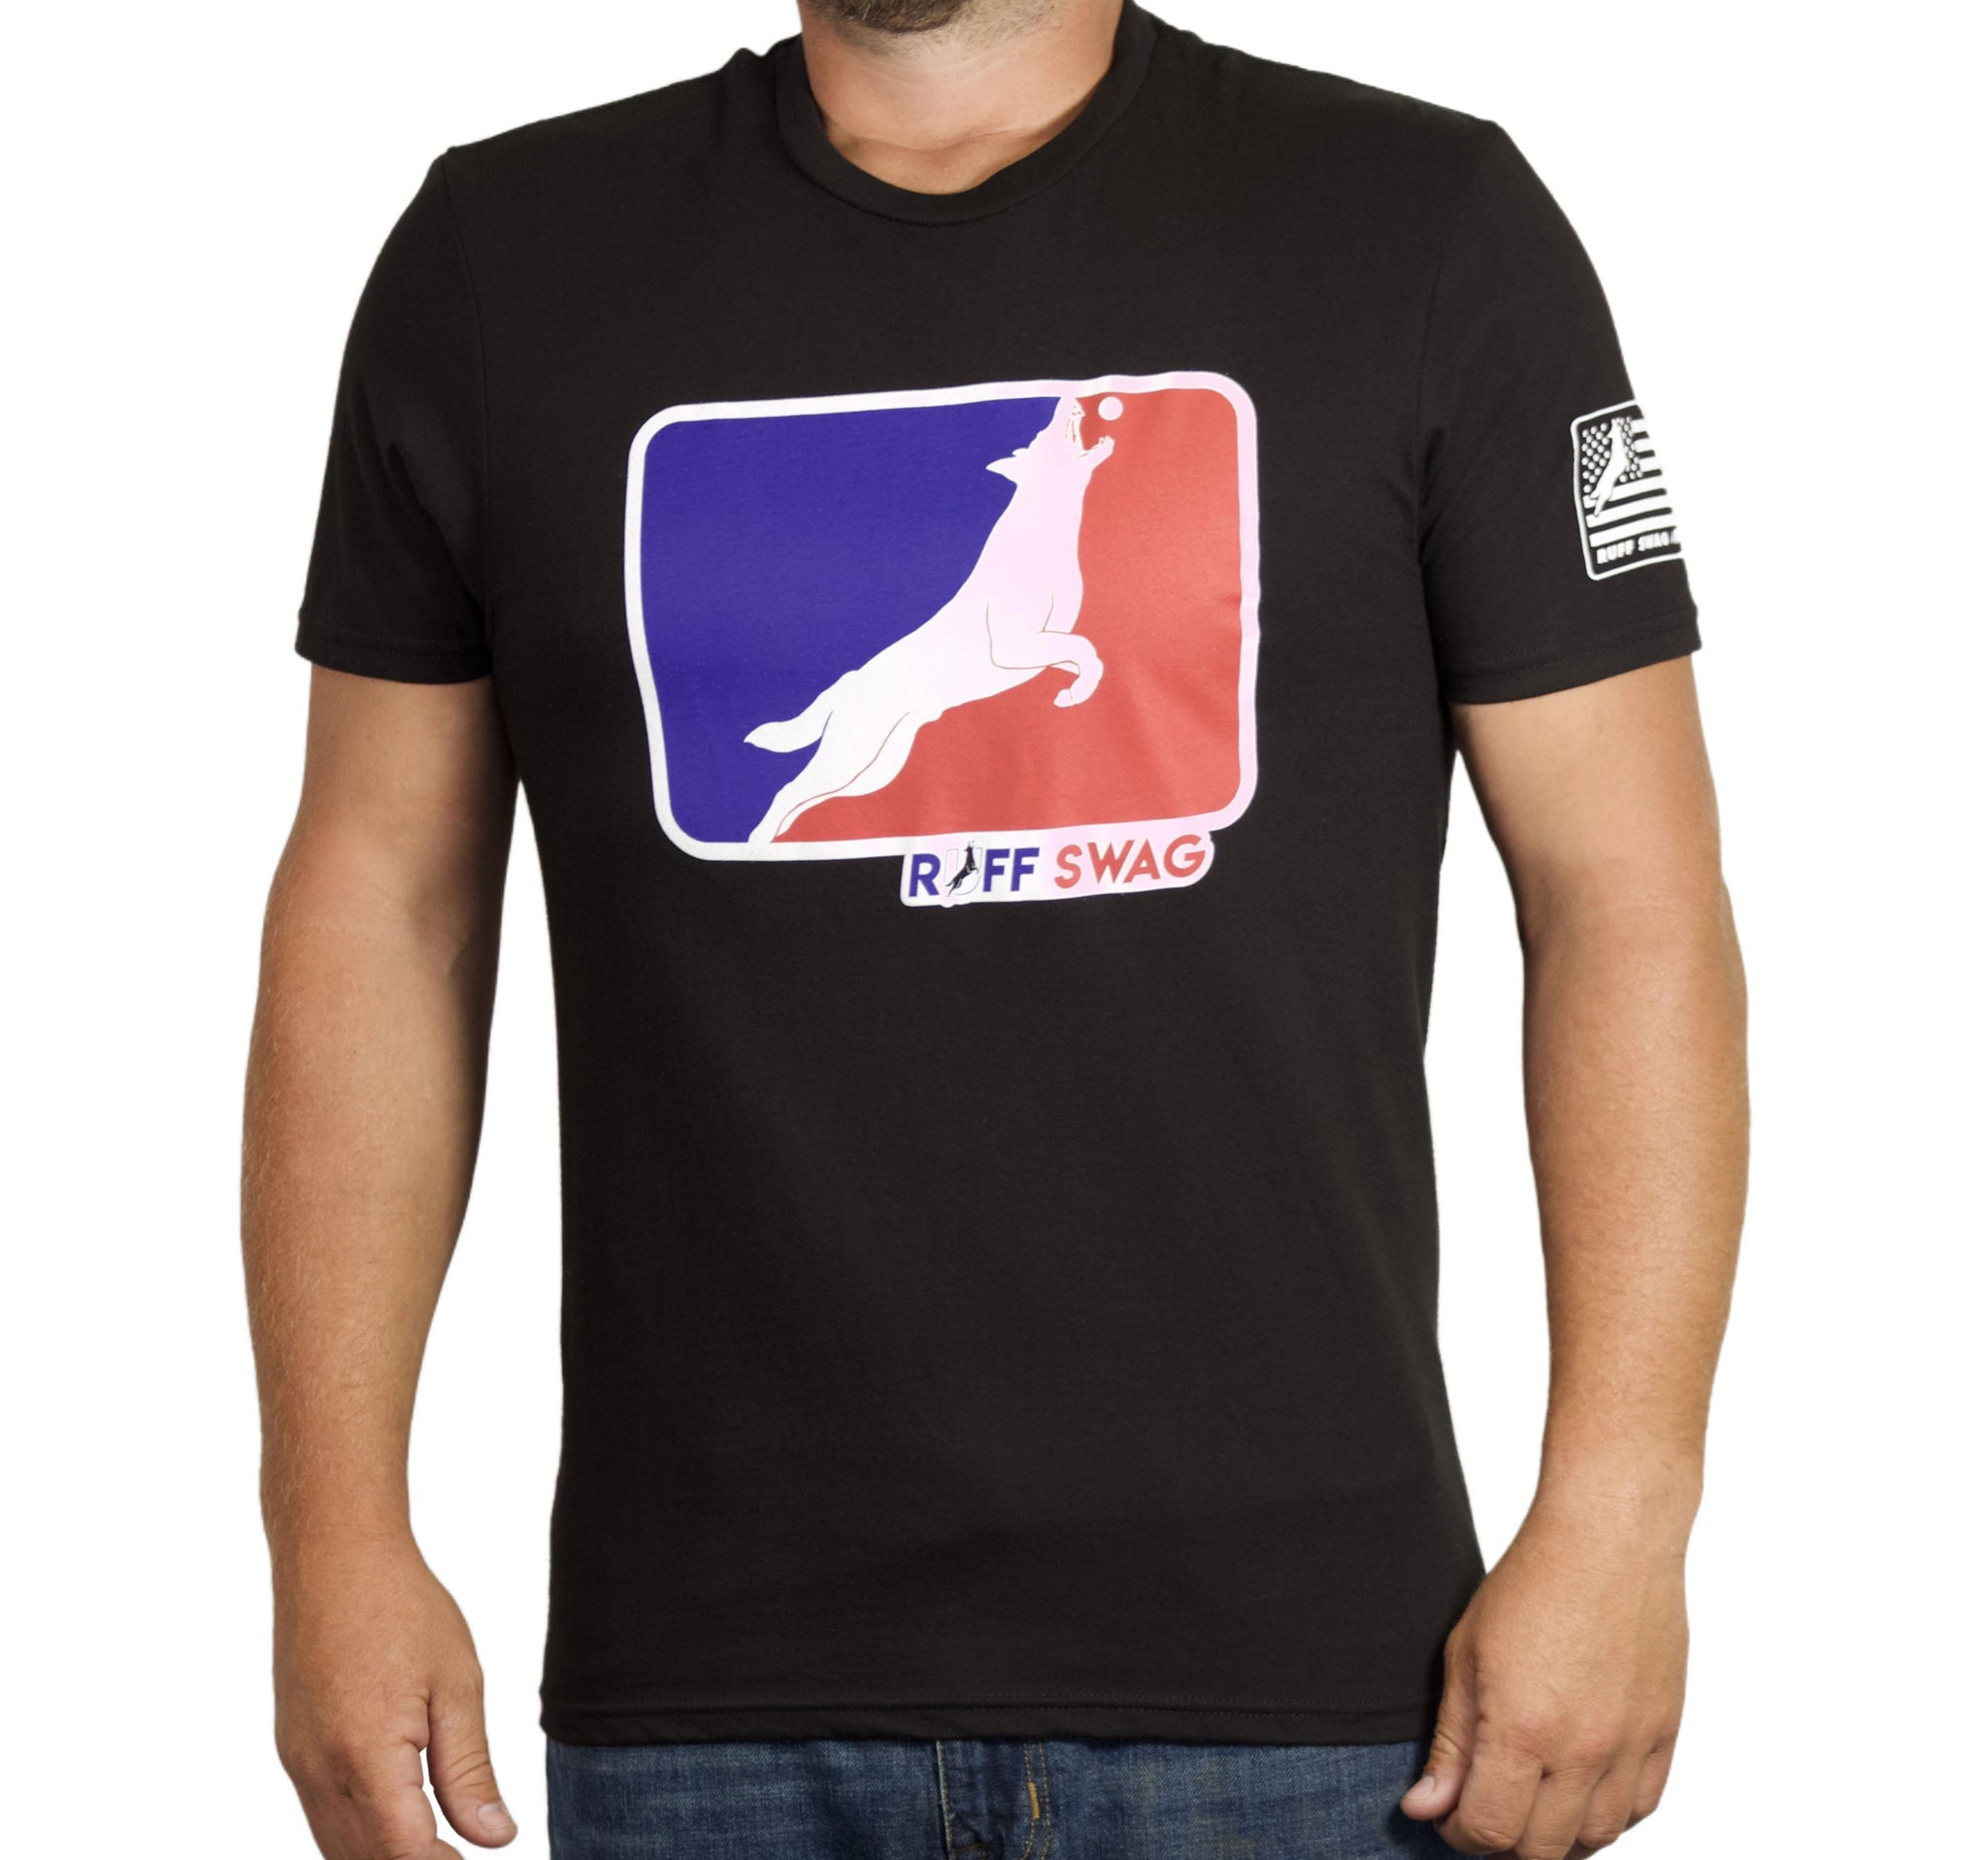 Ruff Swag Major League Dog Sports